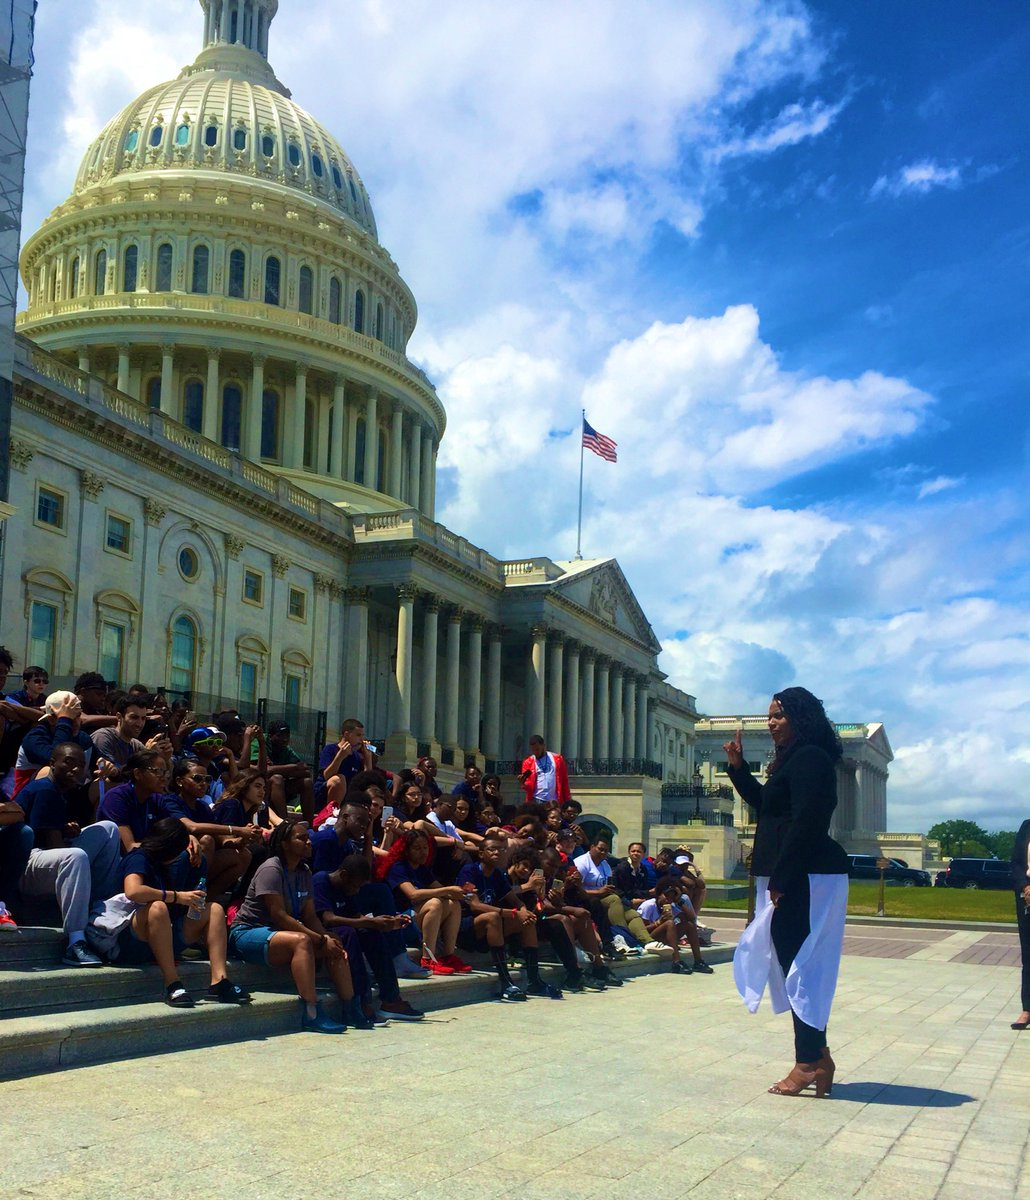 ".@AyannaPressley to students of color from @BrookeSchool on living in this climate: ""don't let them take your joy. Joy is an act of resistance."" #8thgradetrip #teacherlife #representationmatters<br>http://pic.twitter.com/DPCXQjdAnJ"